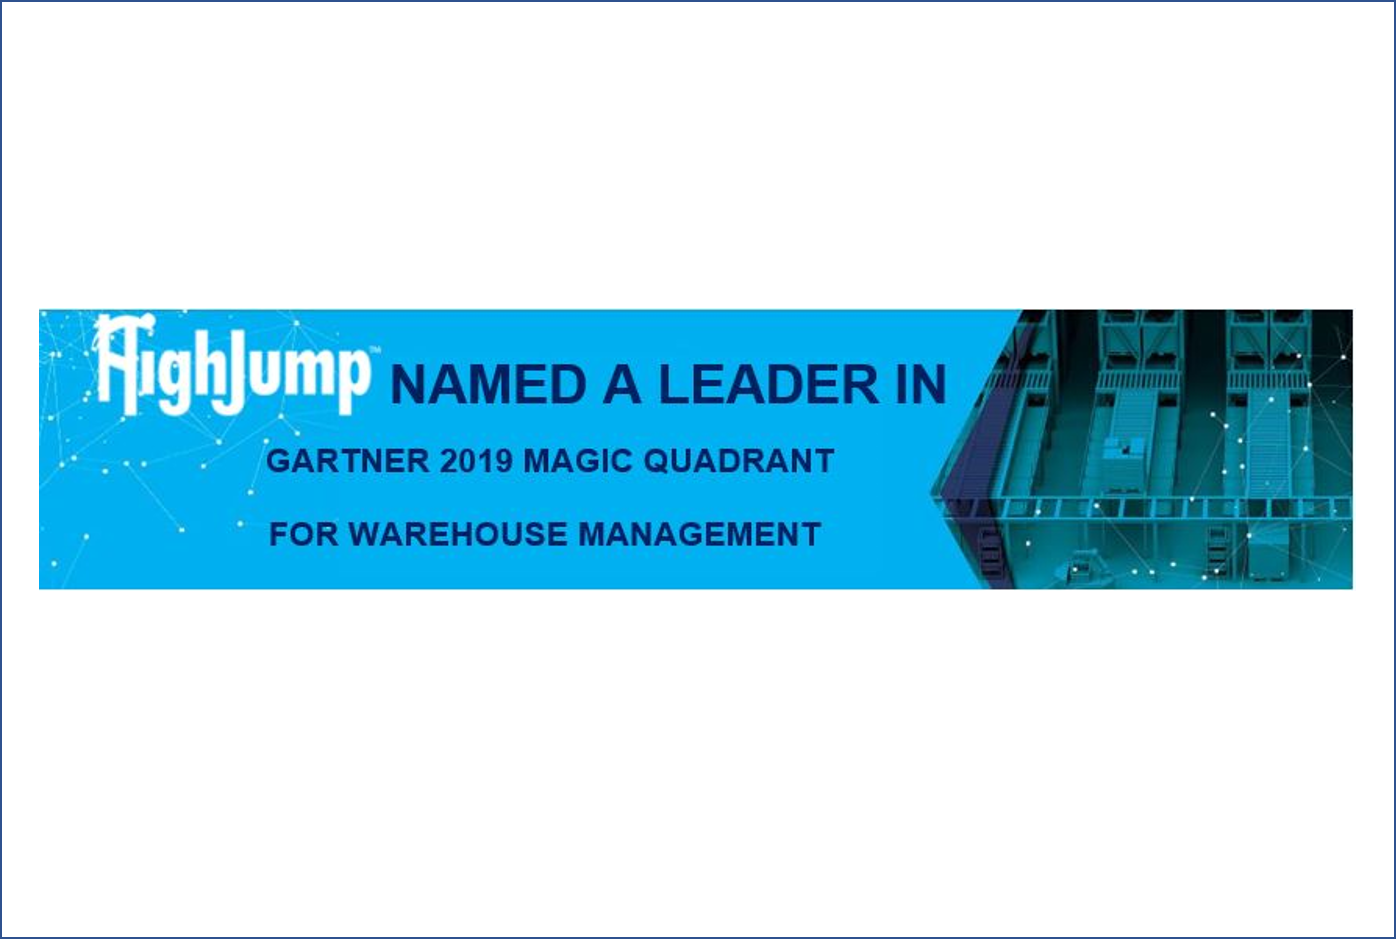 HighJump Named a Leader in Gartner 2019 Magic Quadrant for Warehouse Management Systems